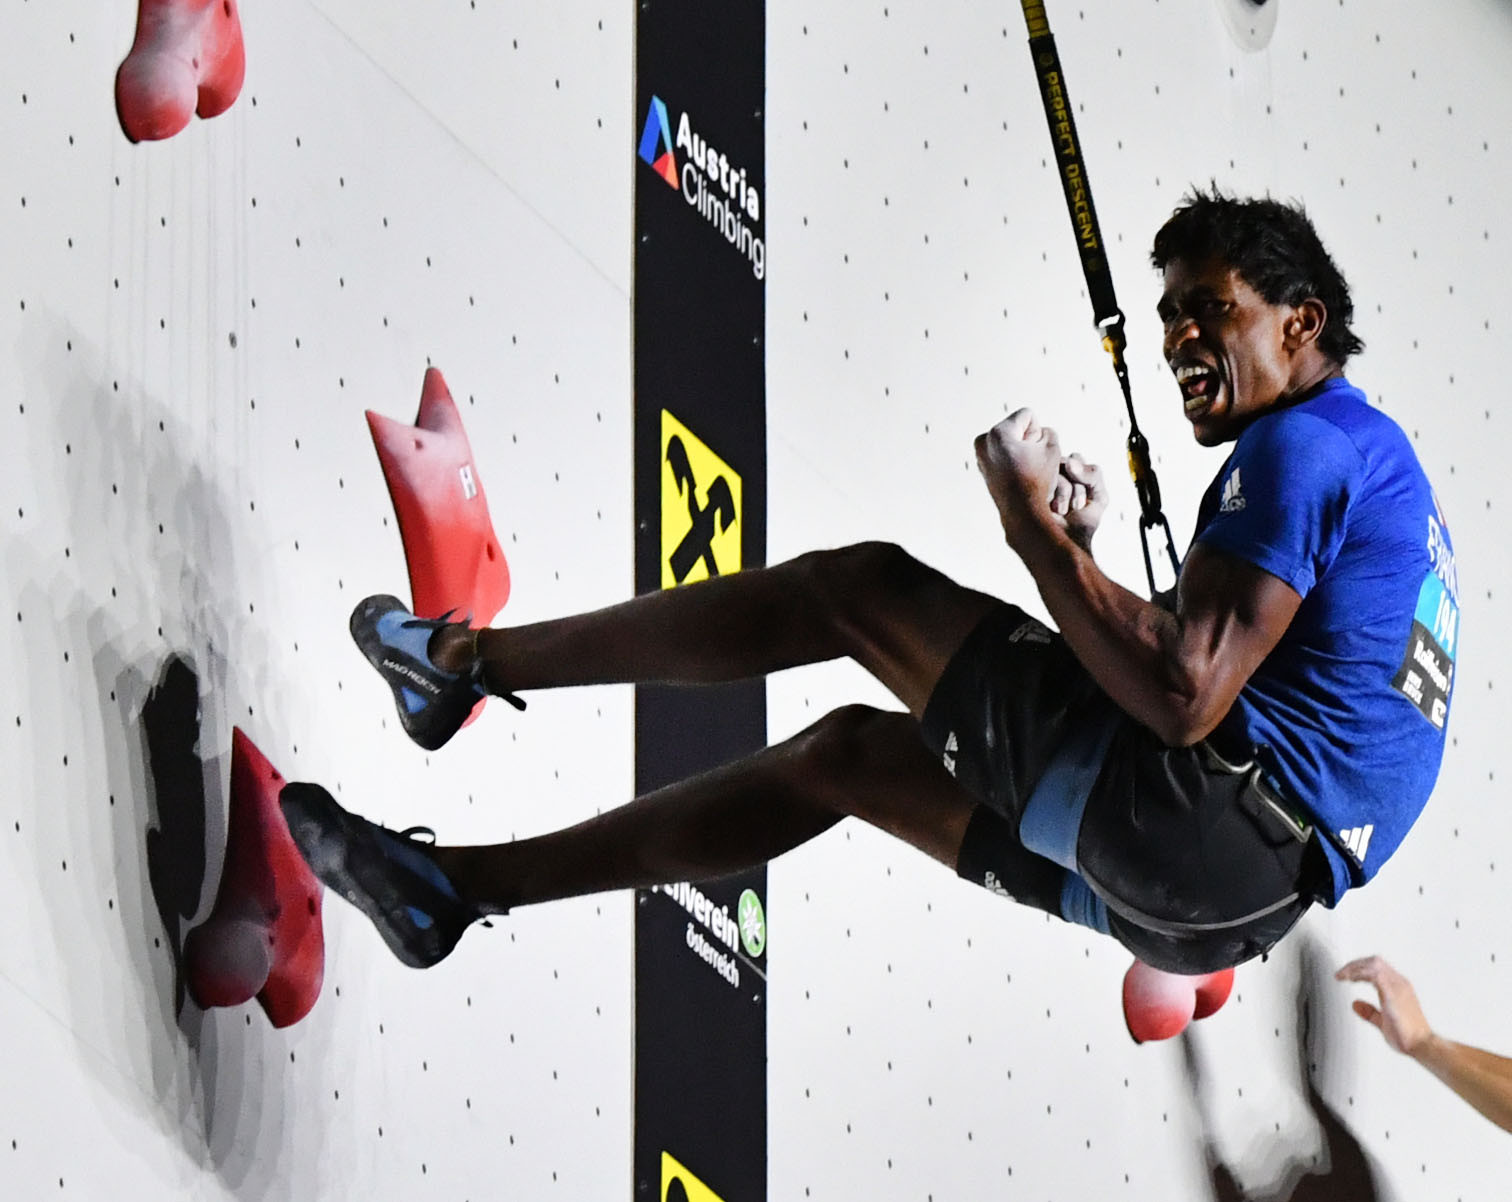 France's Bassa Mawem won the men's speed final at the  IFSC Climbing World Cup in Moscow ©Getty Images